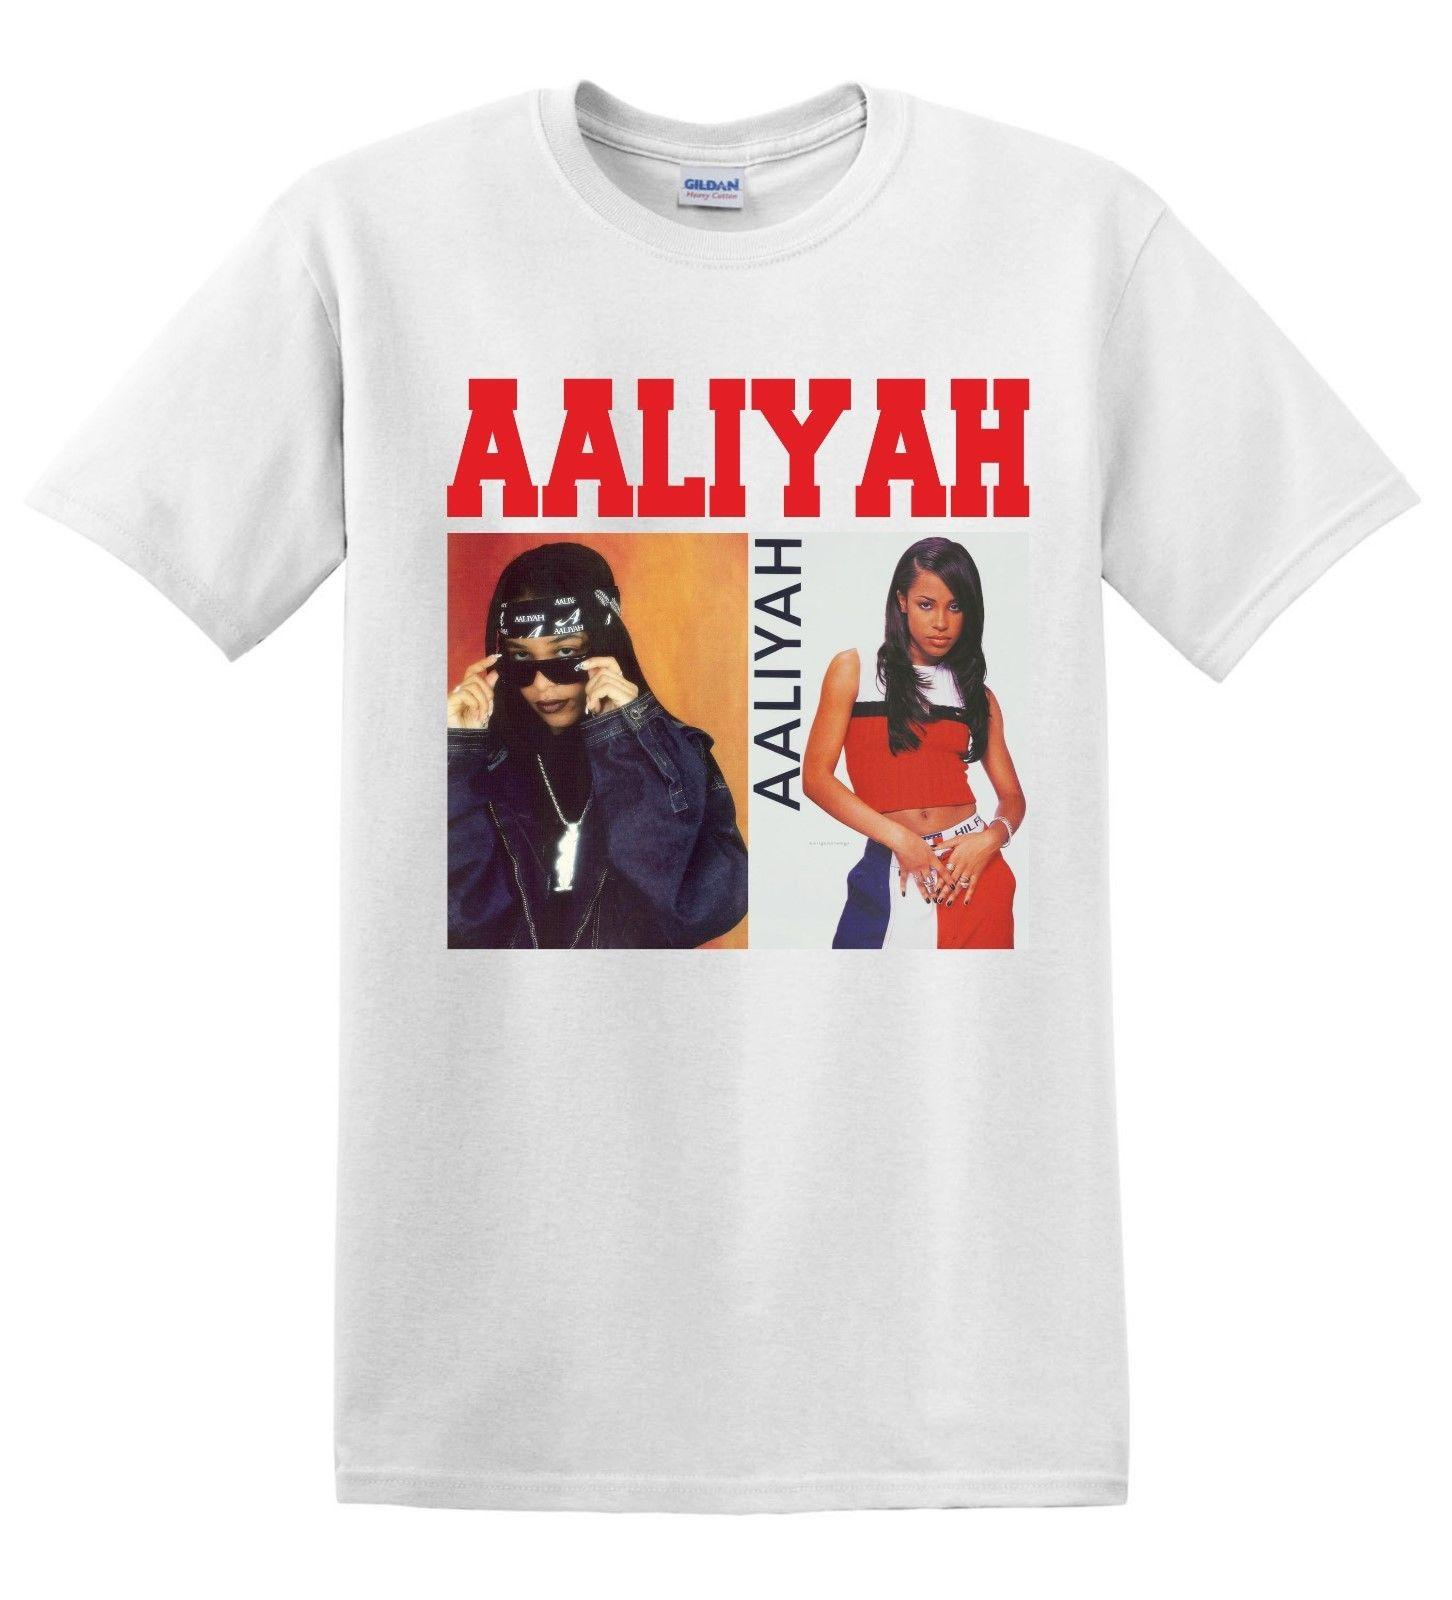 7c77e3b5 Aaliyah T Shirt, R&B Singer,Raper Free Delivery T Shirts With Sayings Awesome  T Shirt Designs From Bstdhgate09, $11.01| DHgate.Com